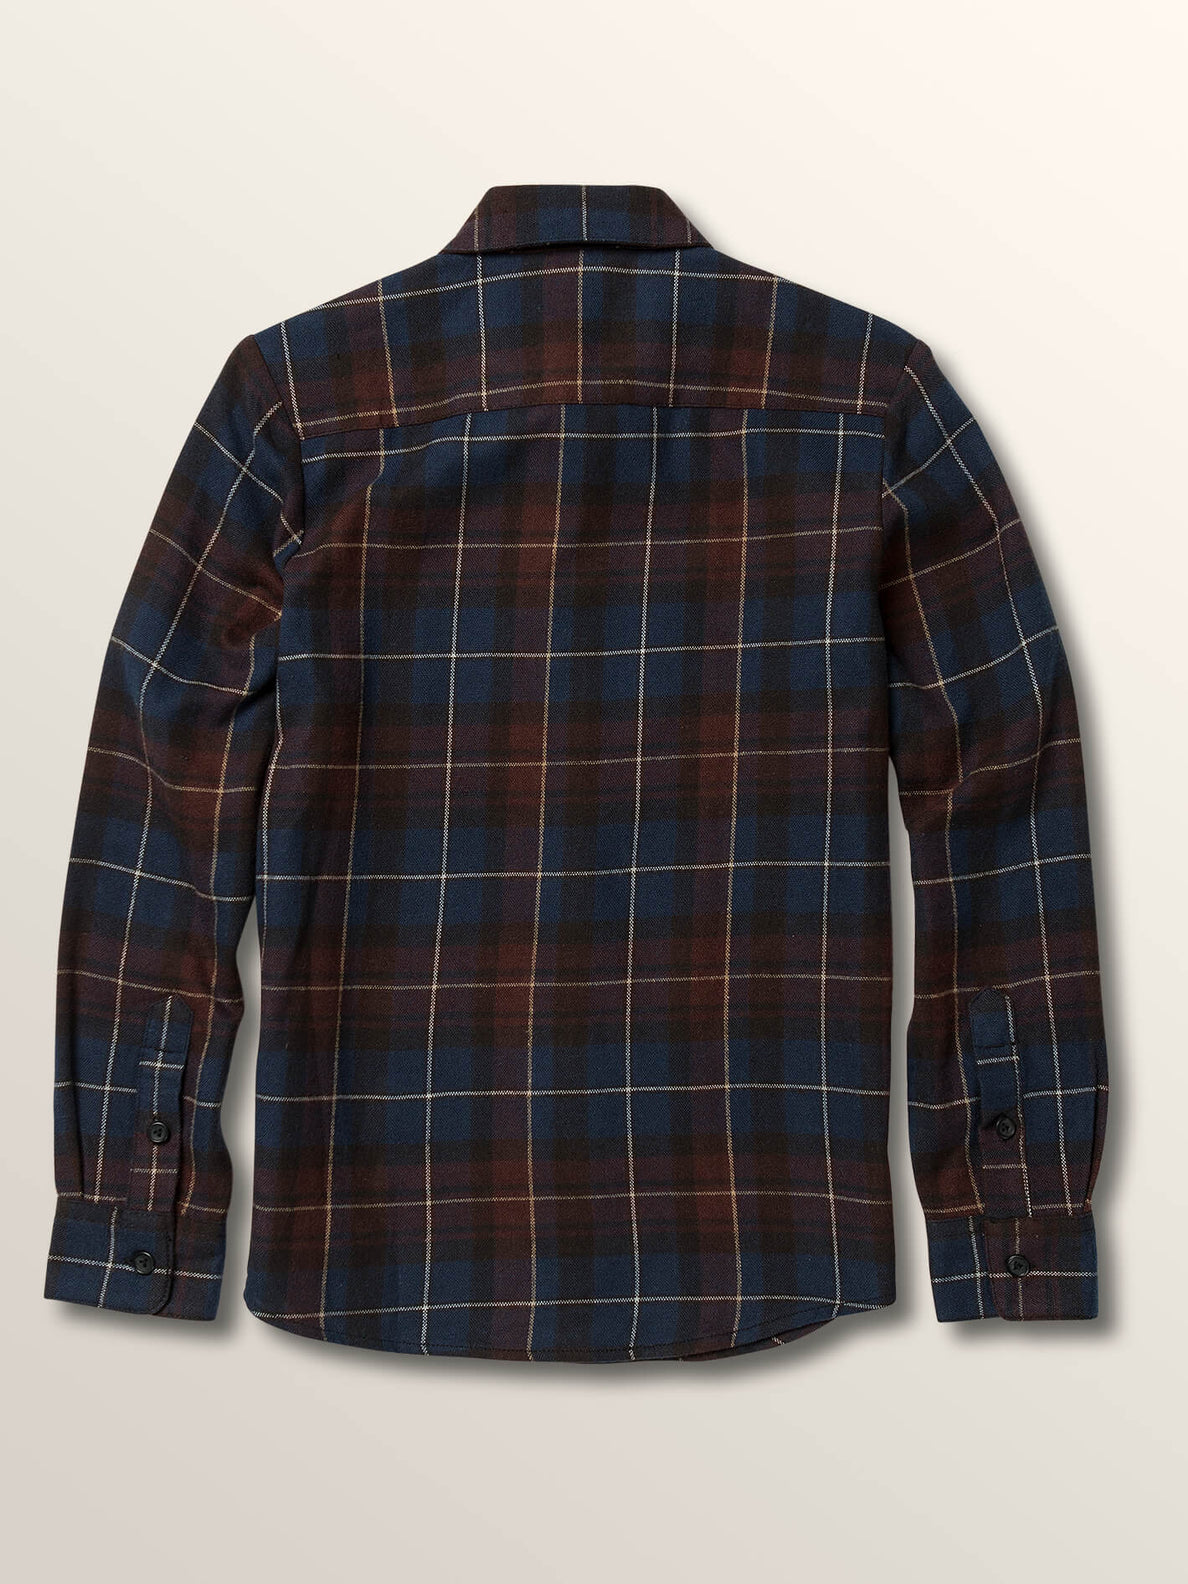 Big Boys Lumberg Long Sleeve Flannel In Melindigo, Back View